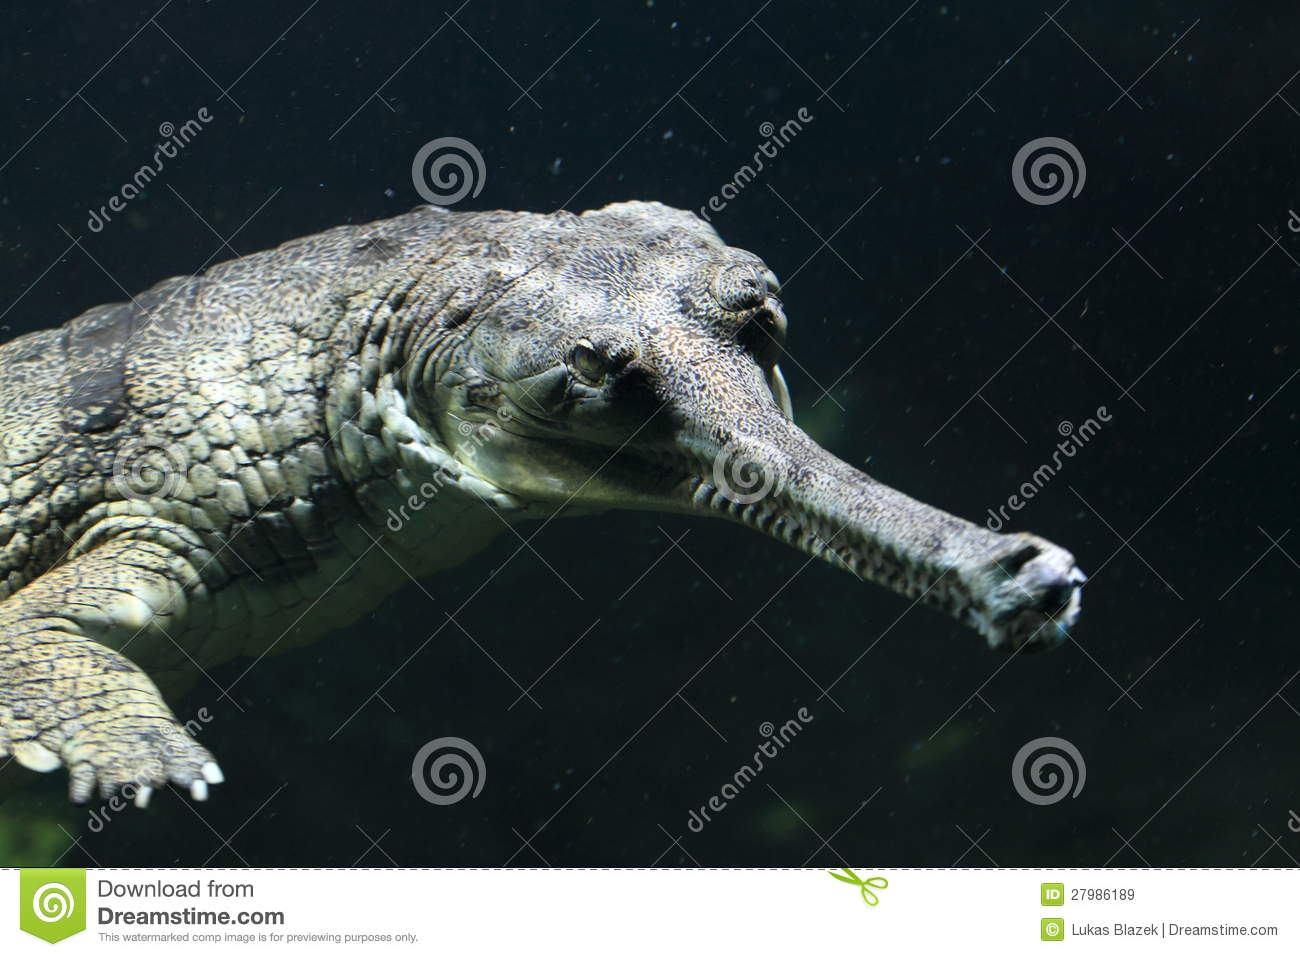 Fish eating crocodile stock image image of gharial for Dreaming of eating fish